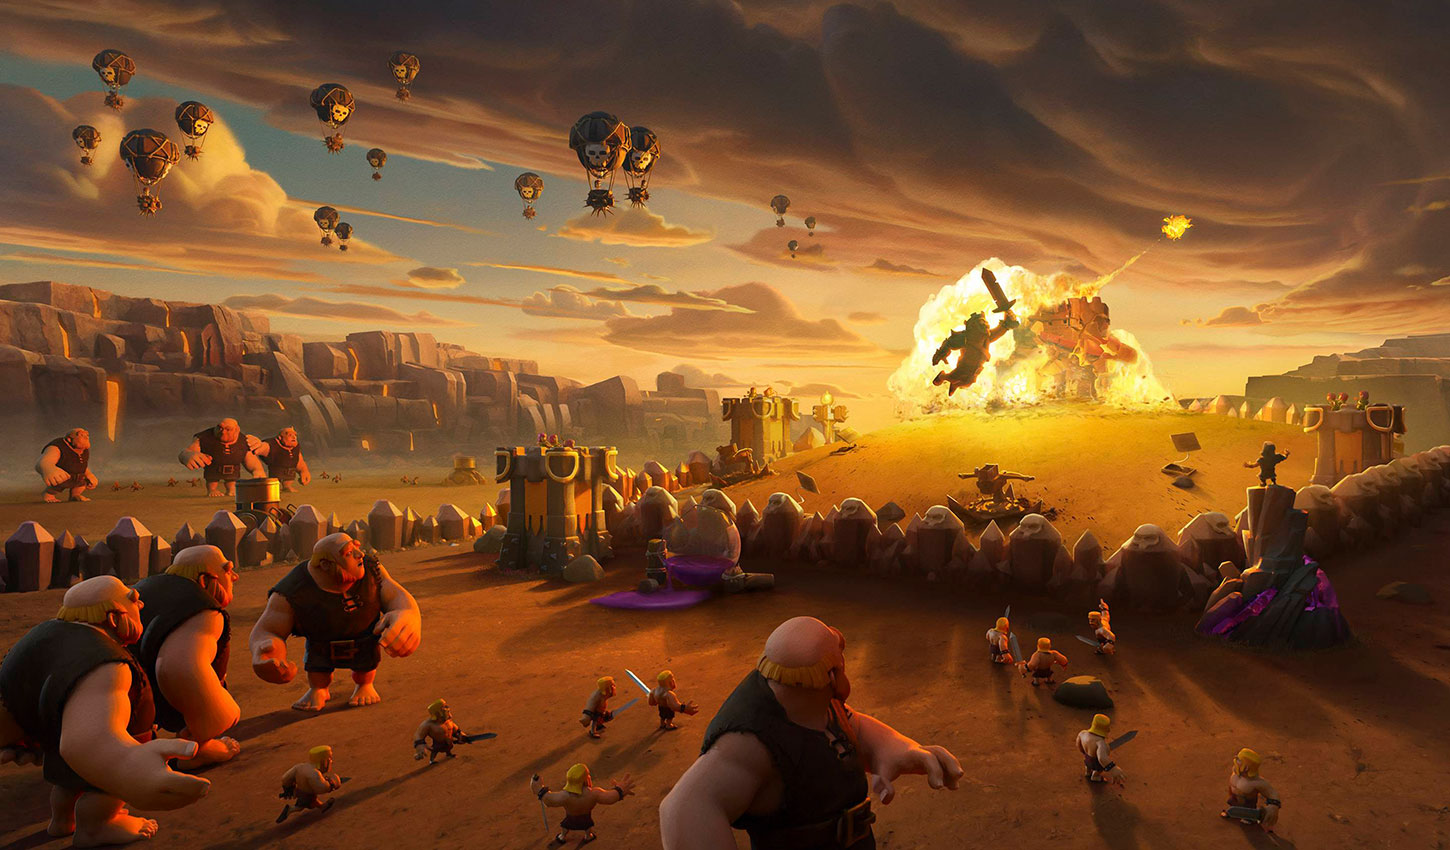 Clash of Clans Grossed $727 Million in Revenue in 2019, a 27% Increase Over 2018